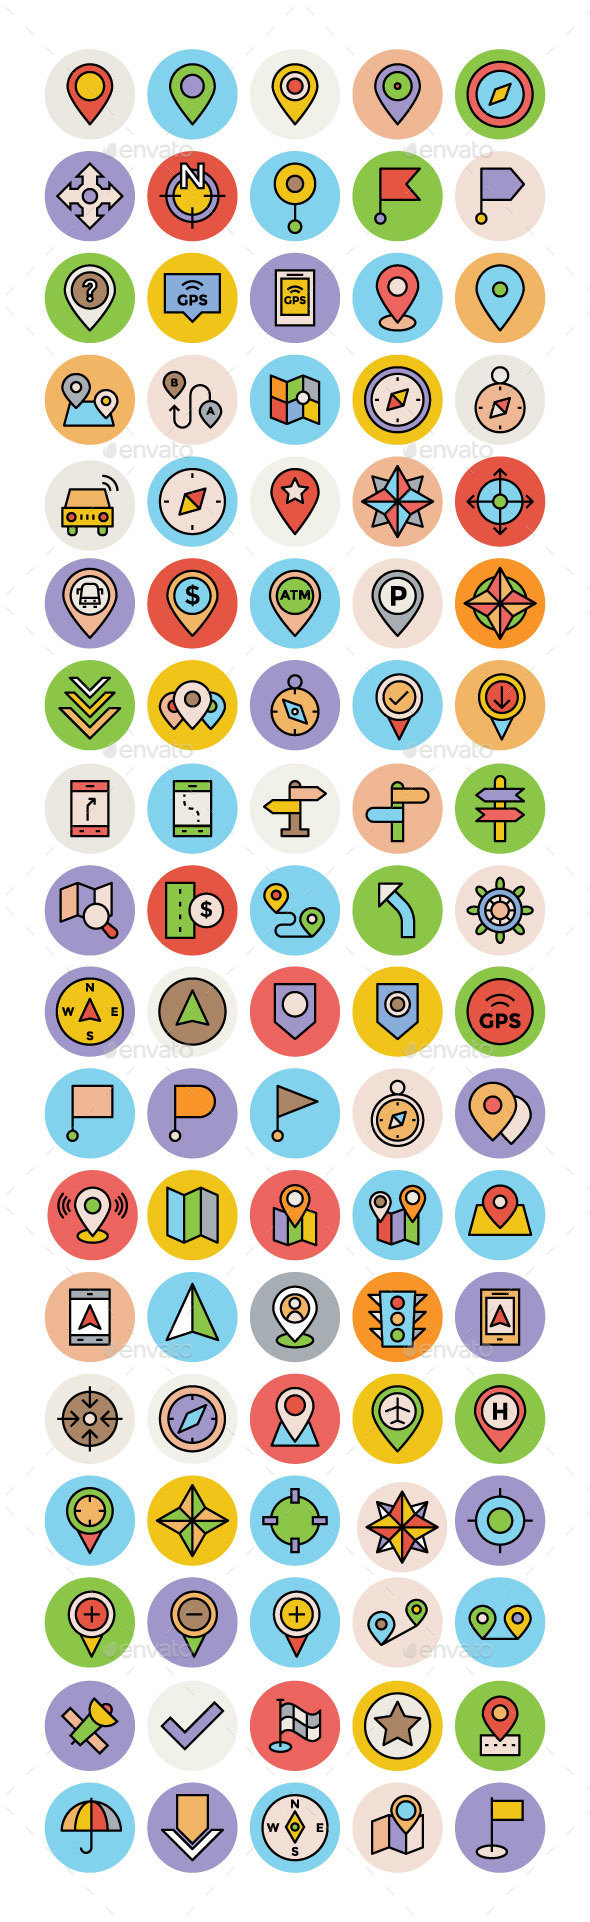 75+ Maps and Navigation Icons Set - Icons